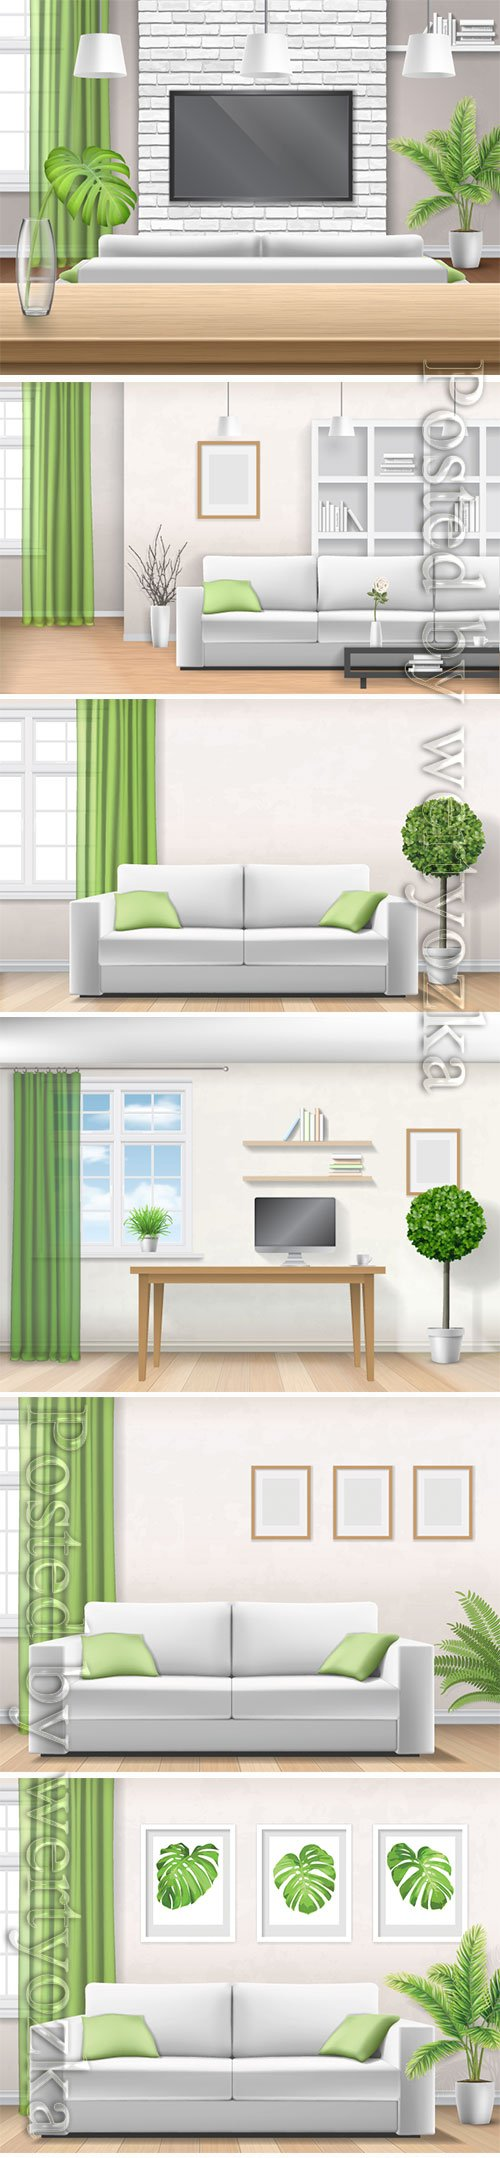 Realistic home interior vector template # 5